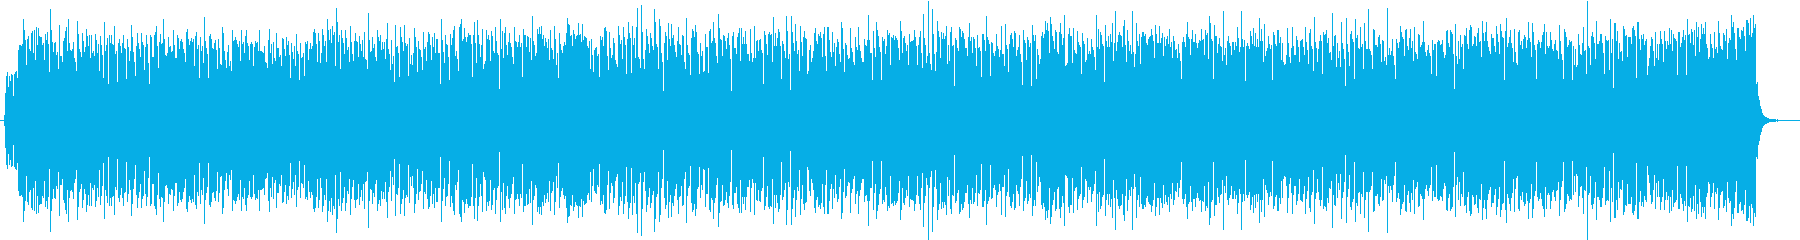 Hilarious Western Swing's reproduced waveform